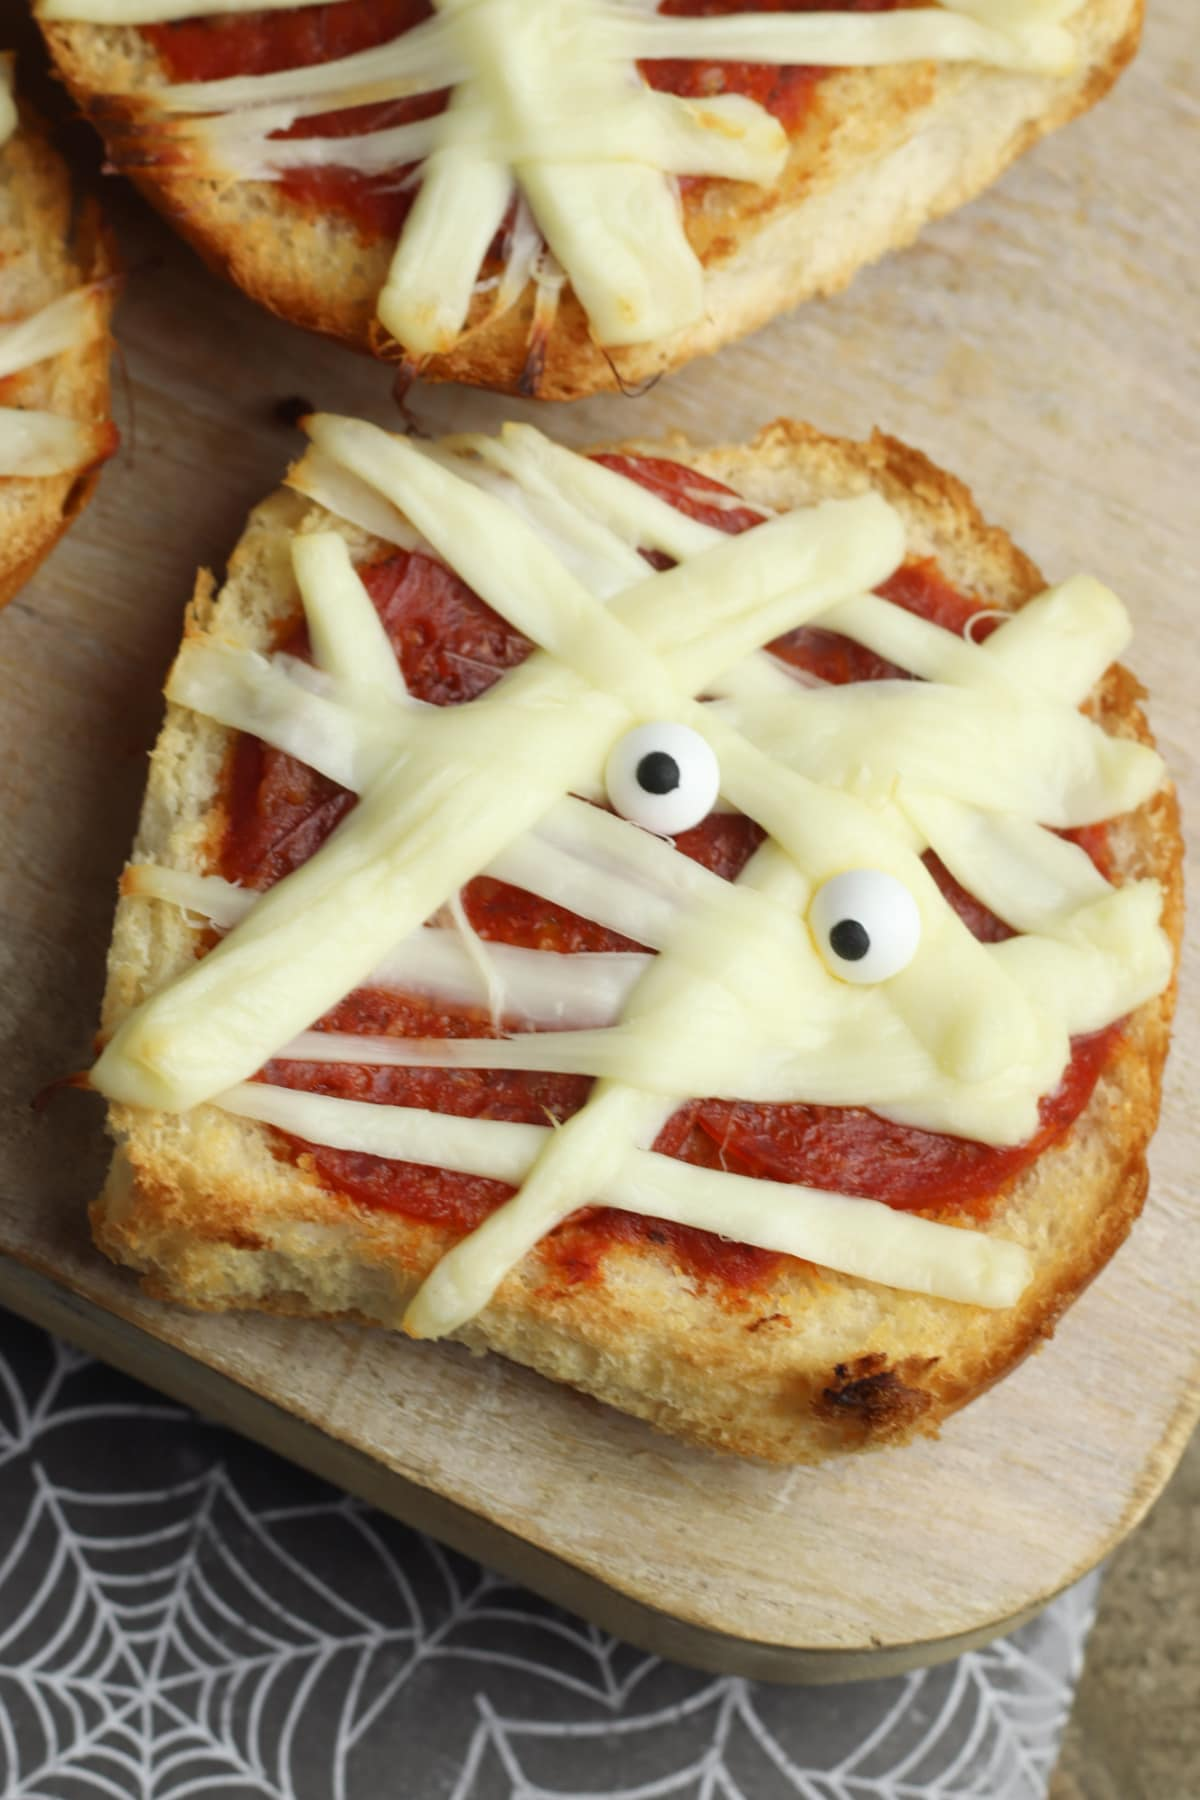 Mummy Pizza with candy eyes